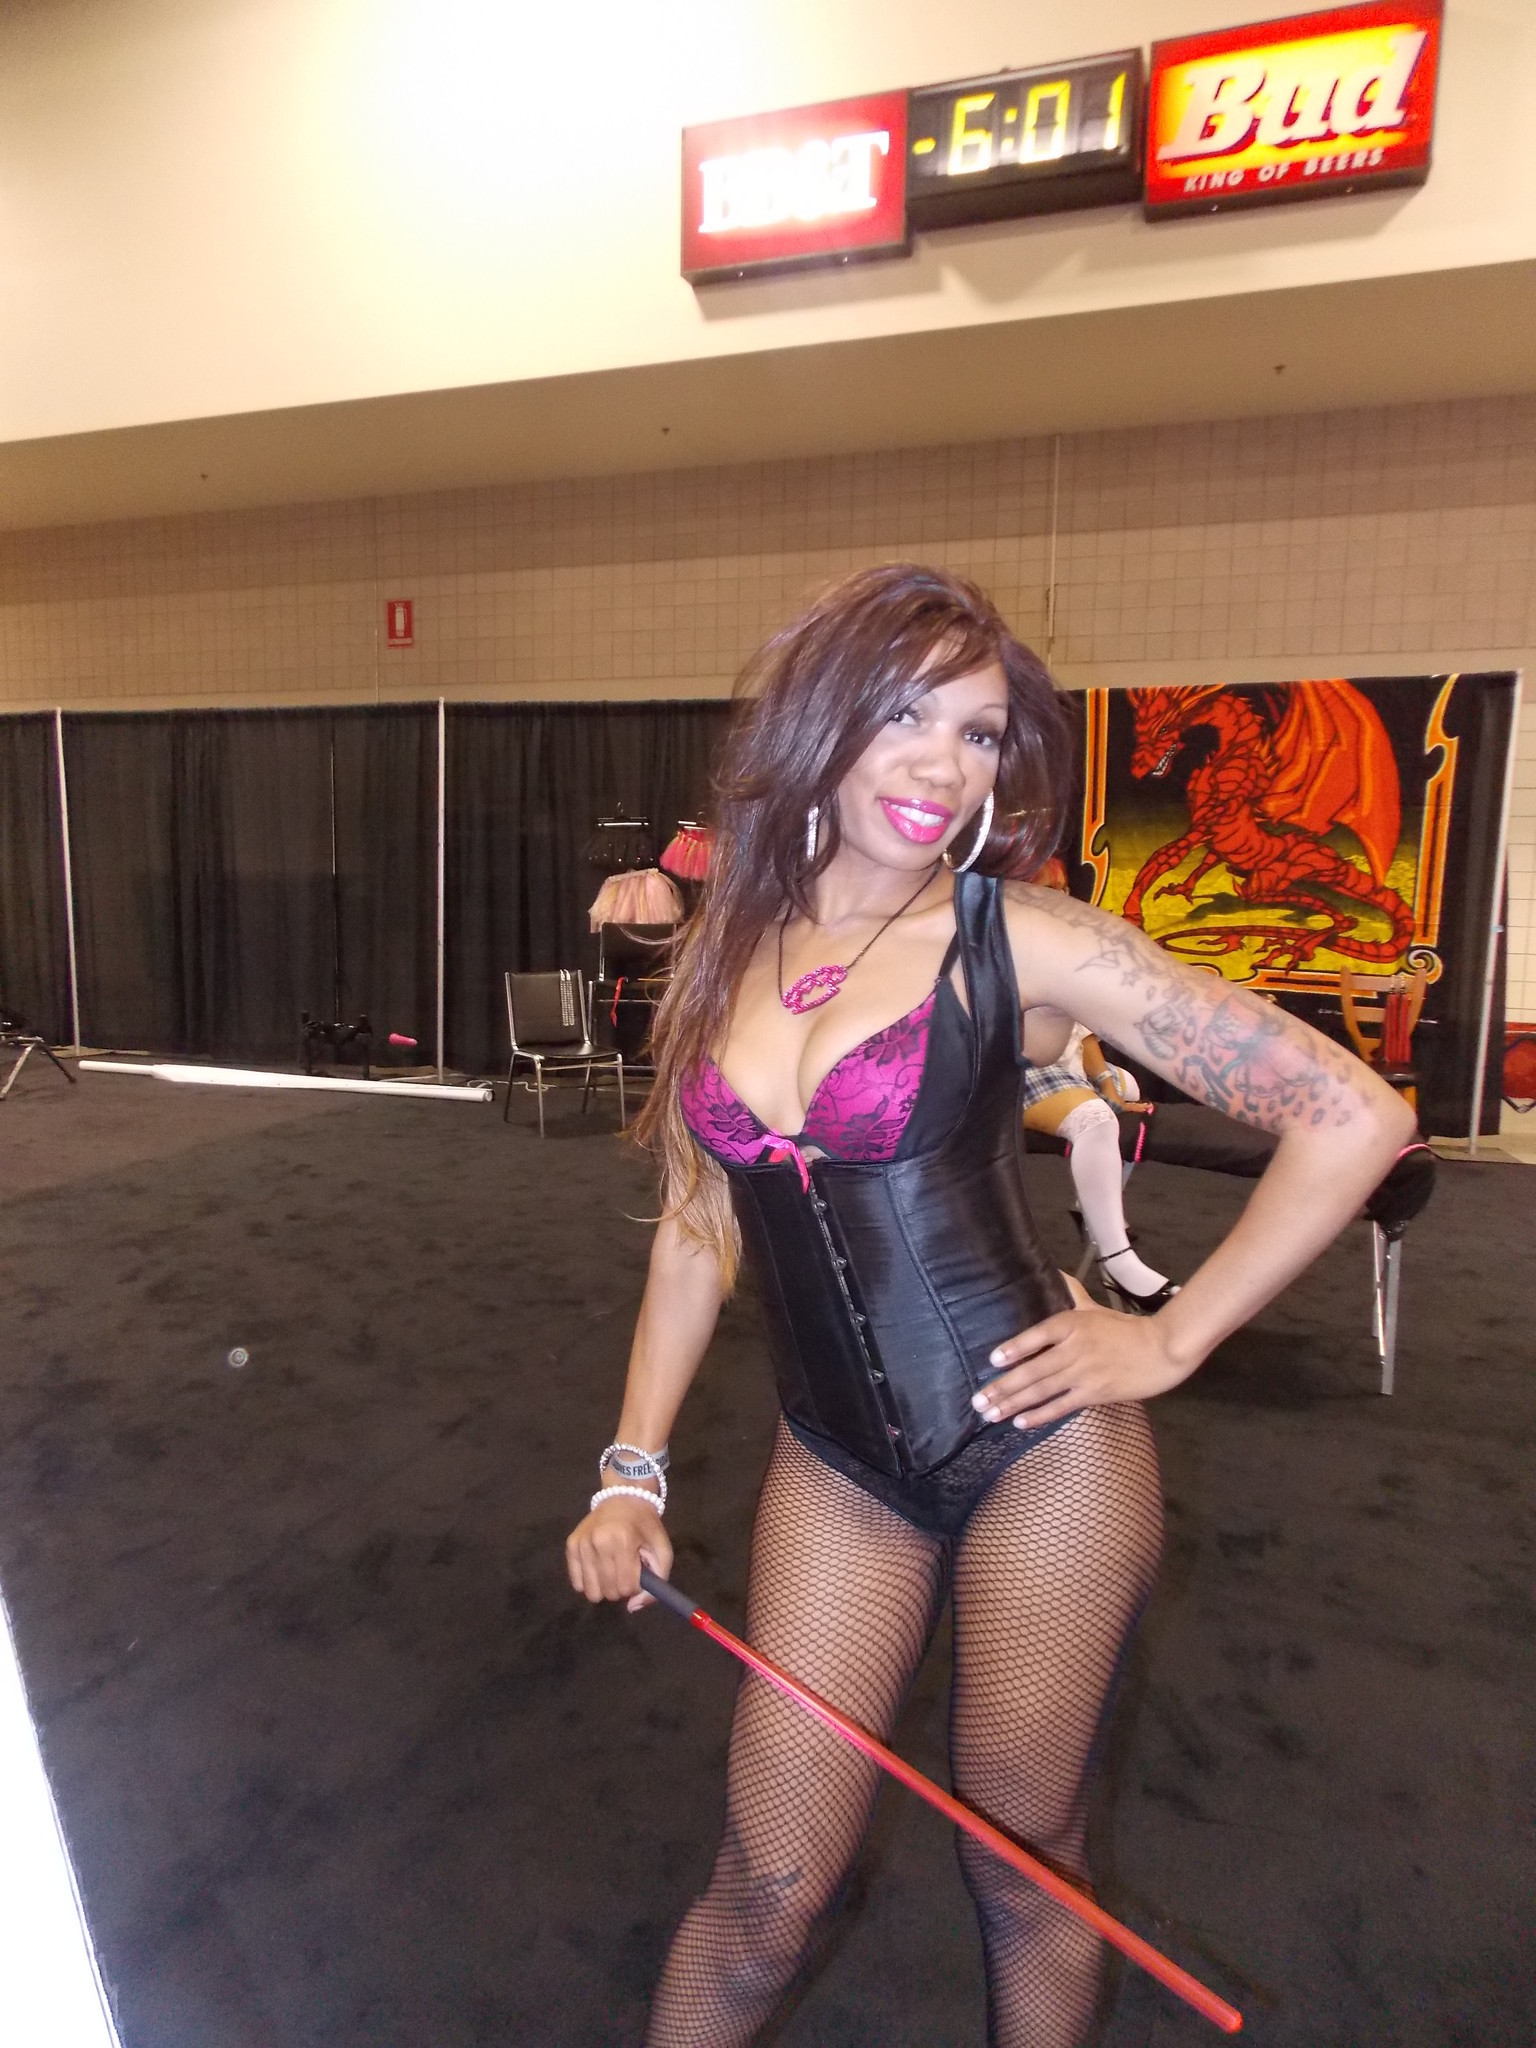 Photos: Exxxotica 2013 in Fort Lauderdale - Exxxotica 2013